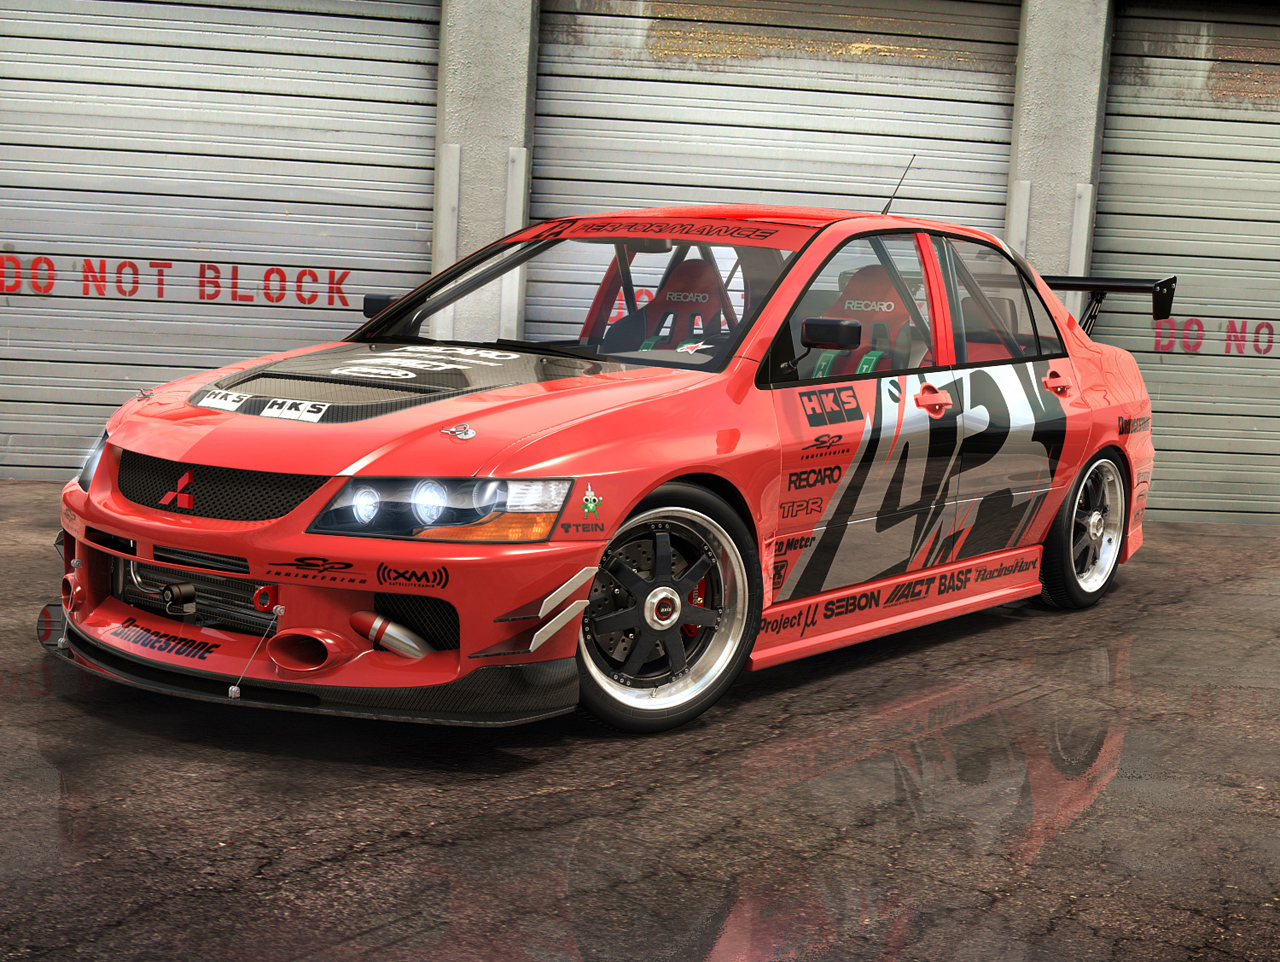 http://static.cargurus.com/images/site/2009/08/27/09/55/2006_mitsubishi_lancer_evolution_mr-pic-303511769549135410.jpeg